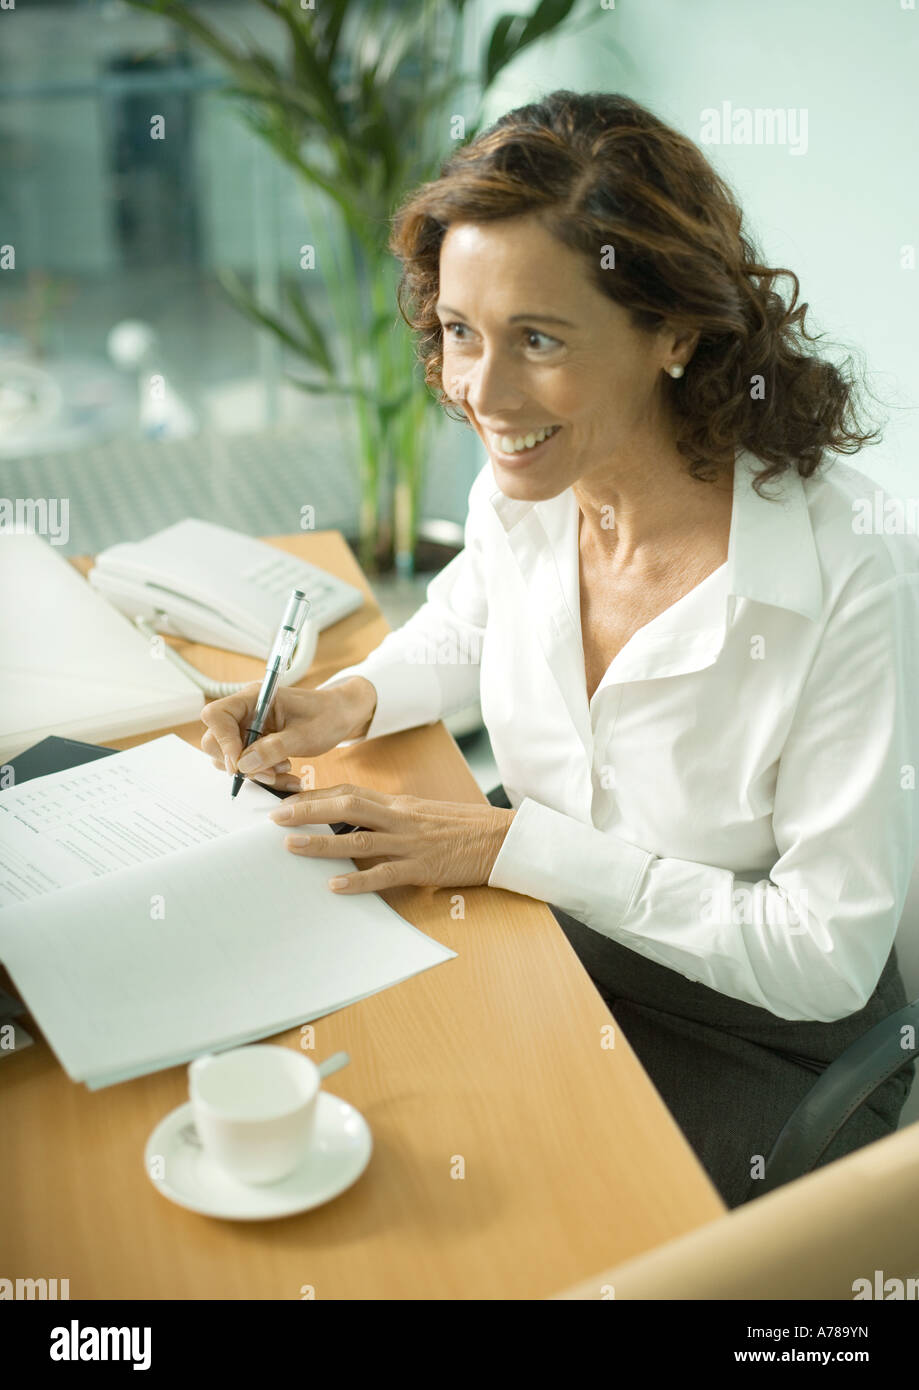 Mature professional woman sitting at table, smiling and looking out of frame - Stock Image